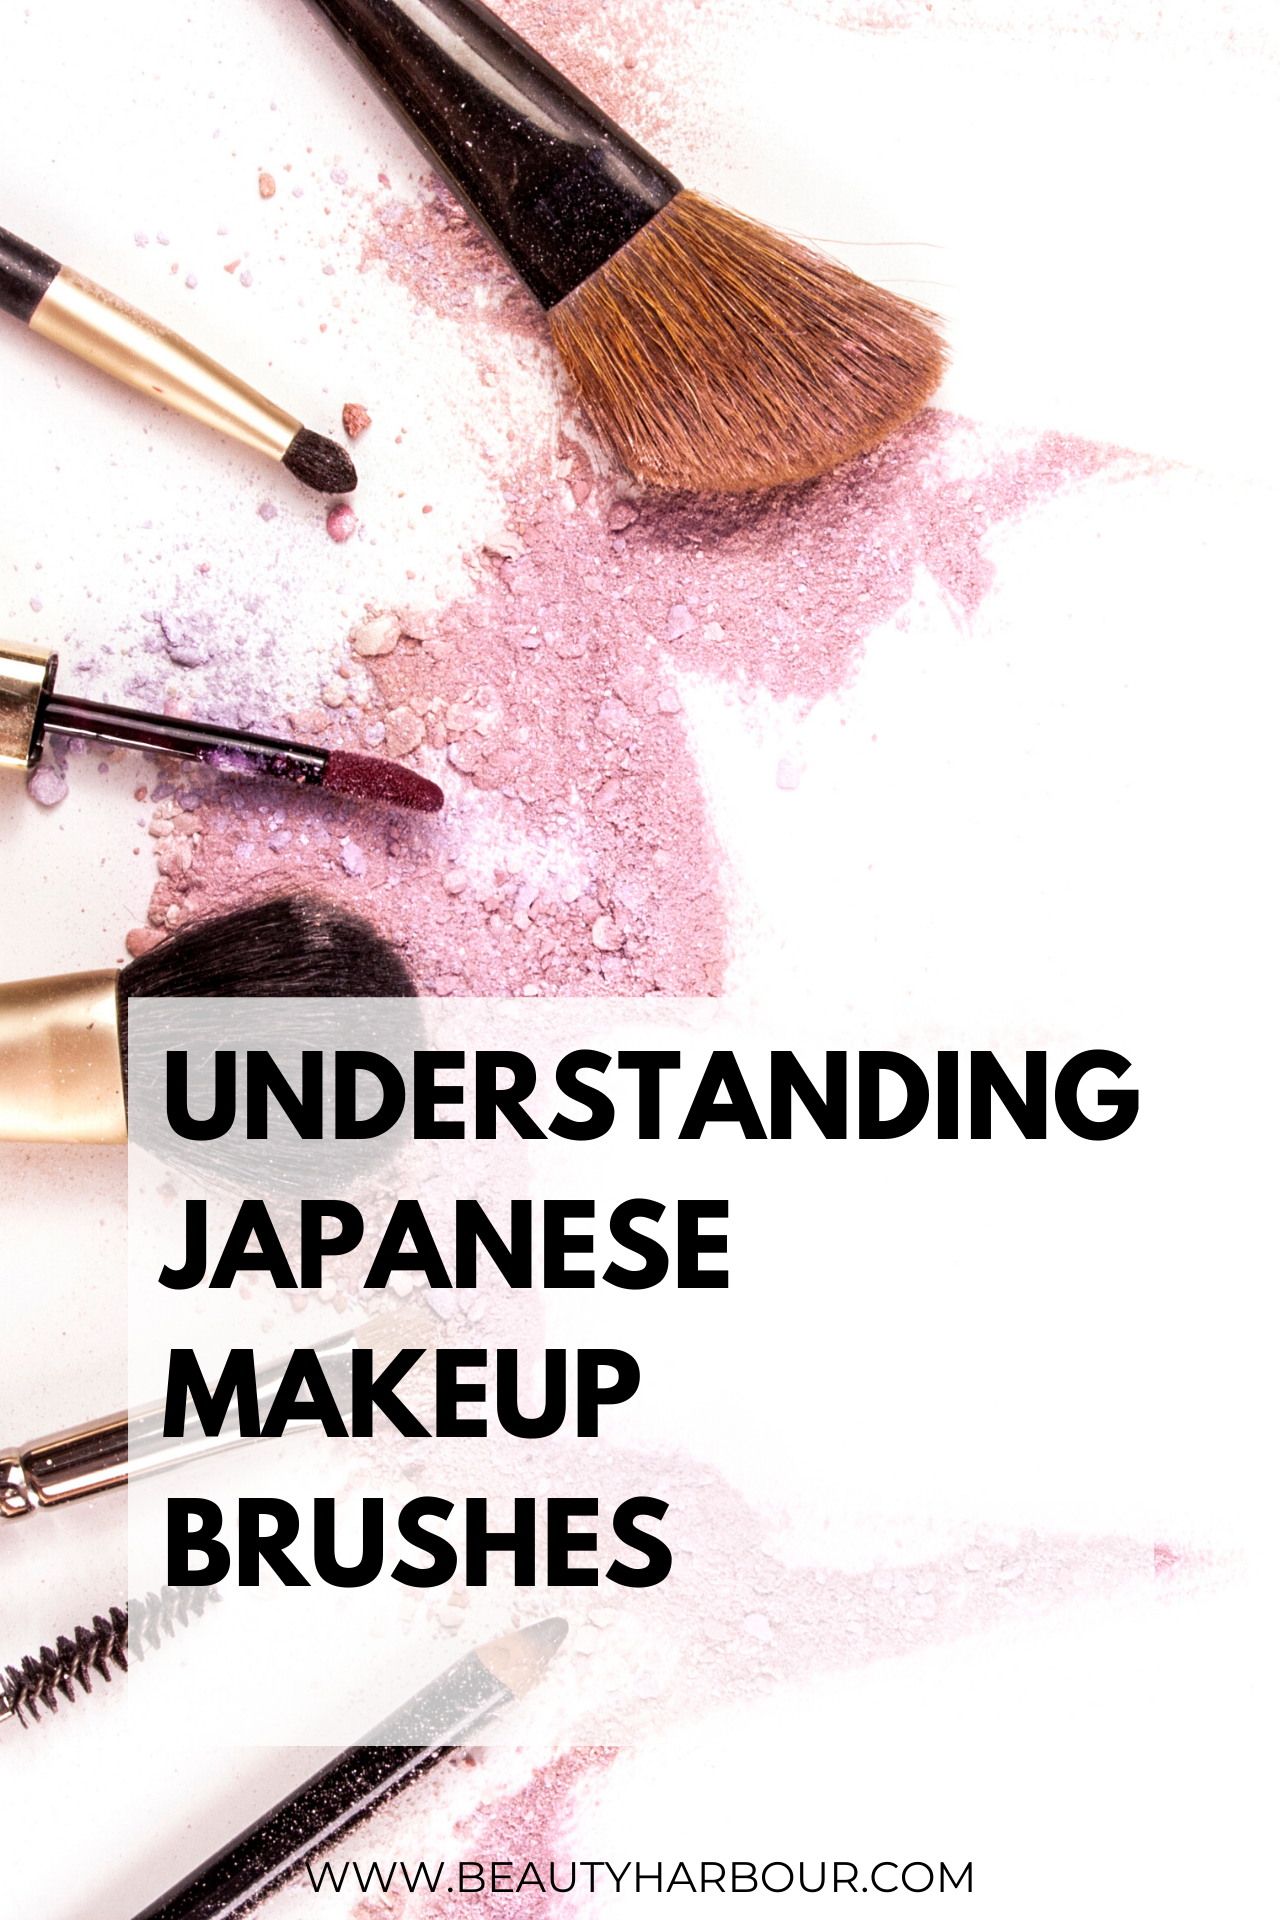 The secret behind why Japanese makeup brushes are the most